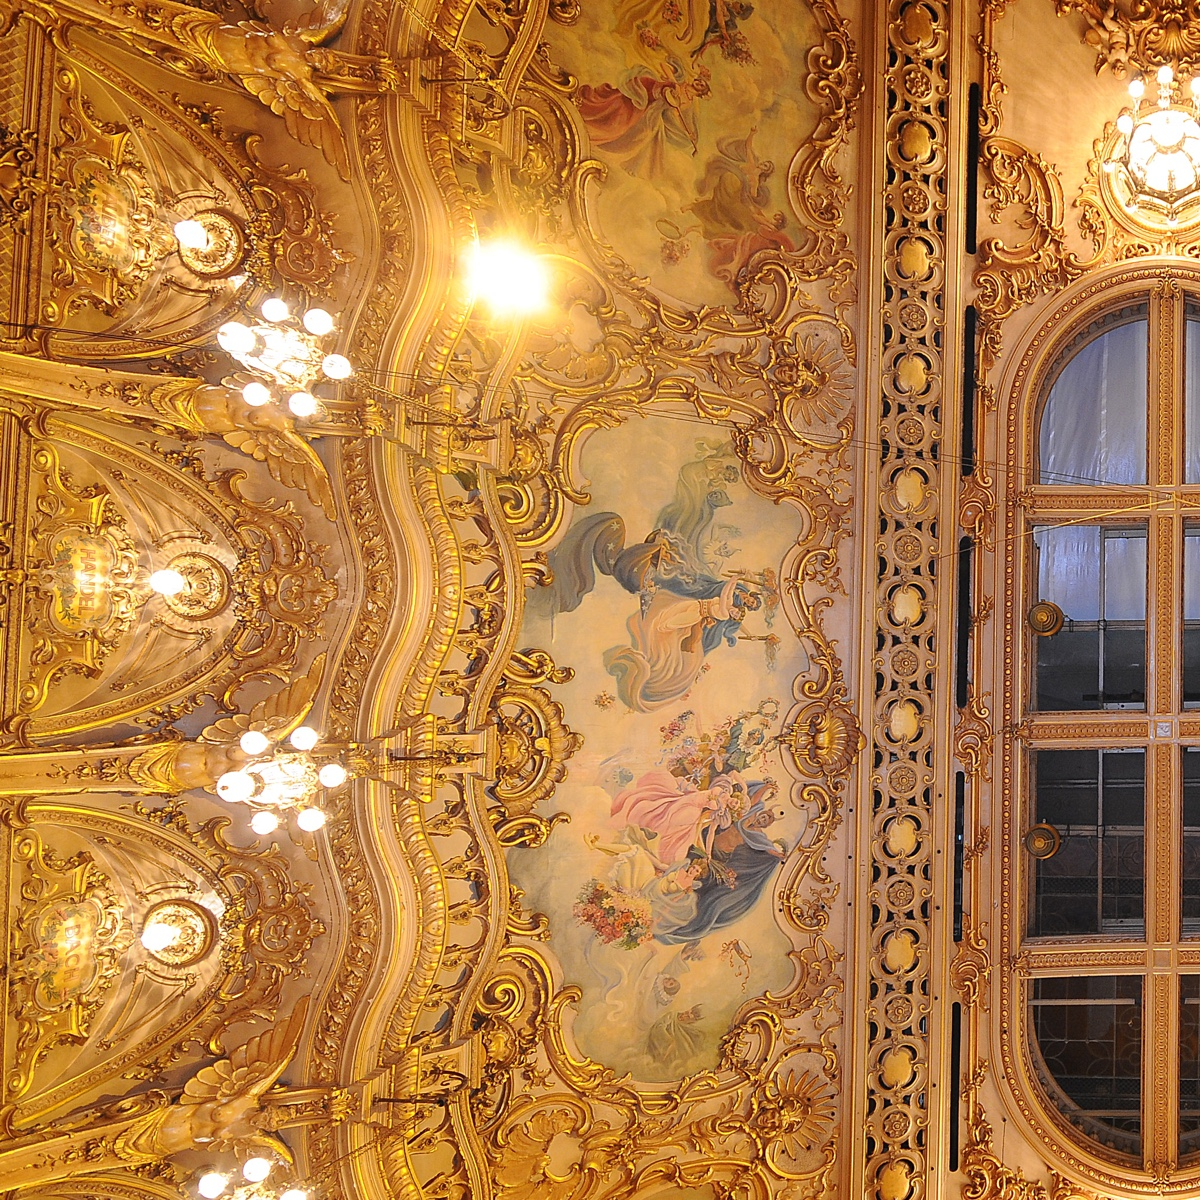 The Blackpool Tower Ballroom Ceiling